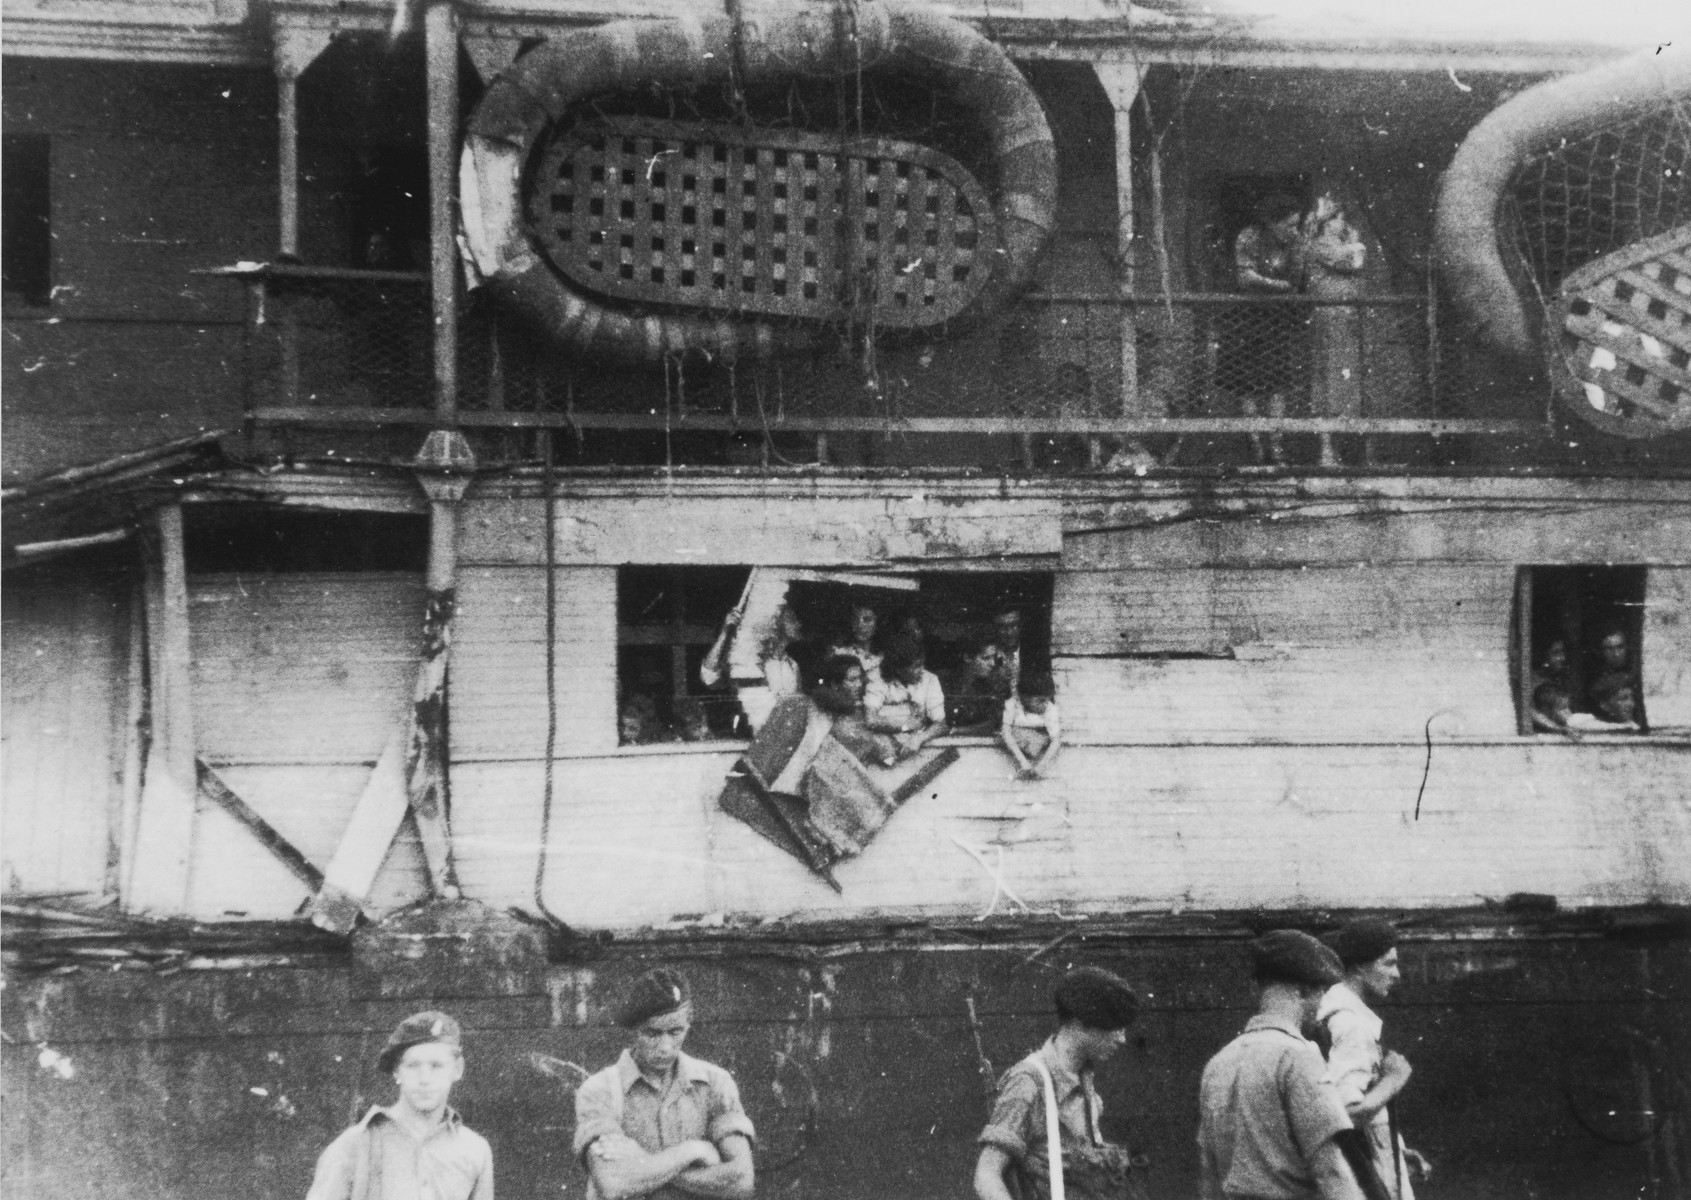 Jewish DPs on the battered illegal immigrant ship, Exodus 1947, look out onto the dock lined with British soldiers in the port of Haifa.